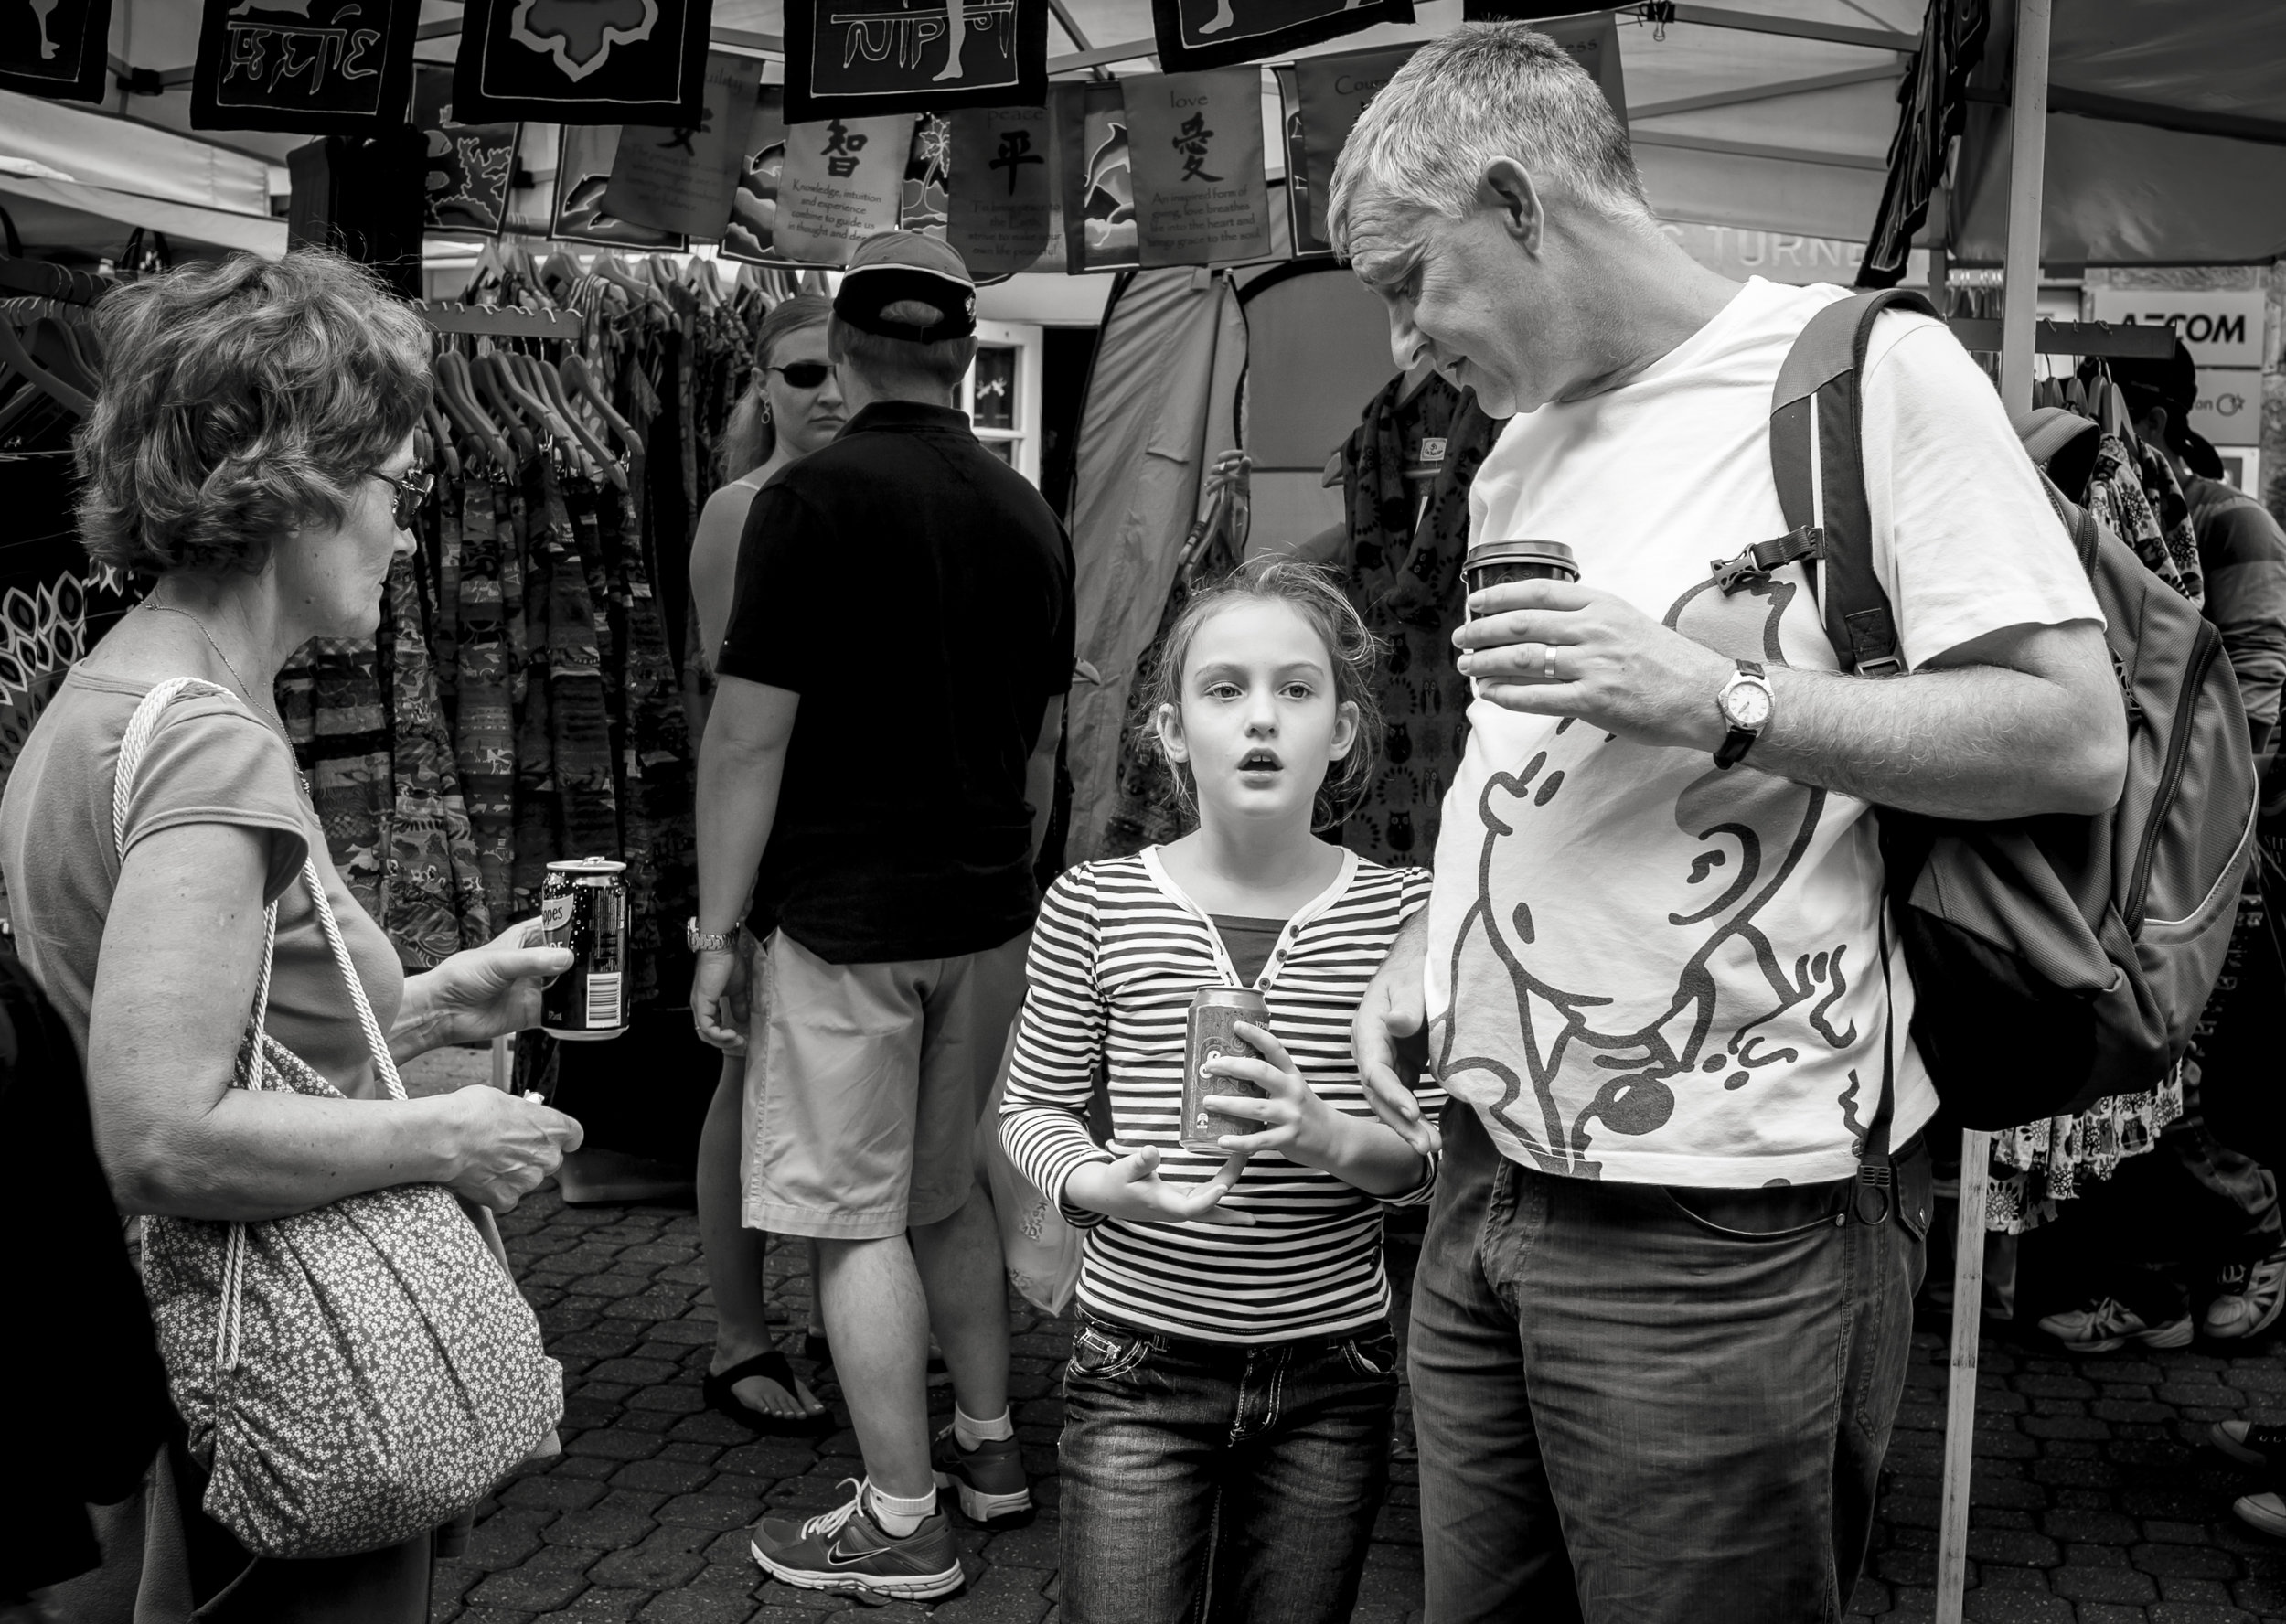 This image was captured for pleasing shape the two adults gave to the framing of the girls face, on a morning of better than normal good luck. The T-shirt, adding the extra two sets of eyes looking at the girl, making everyone look as if they are waiting for some profound decision, could not have been planned.